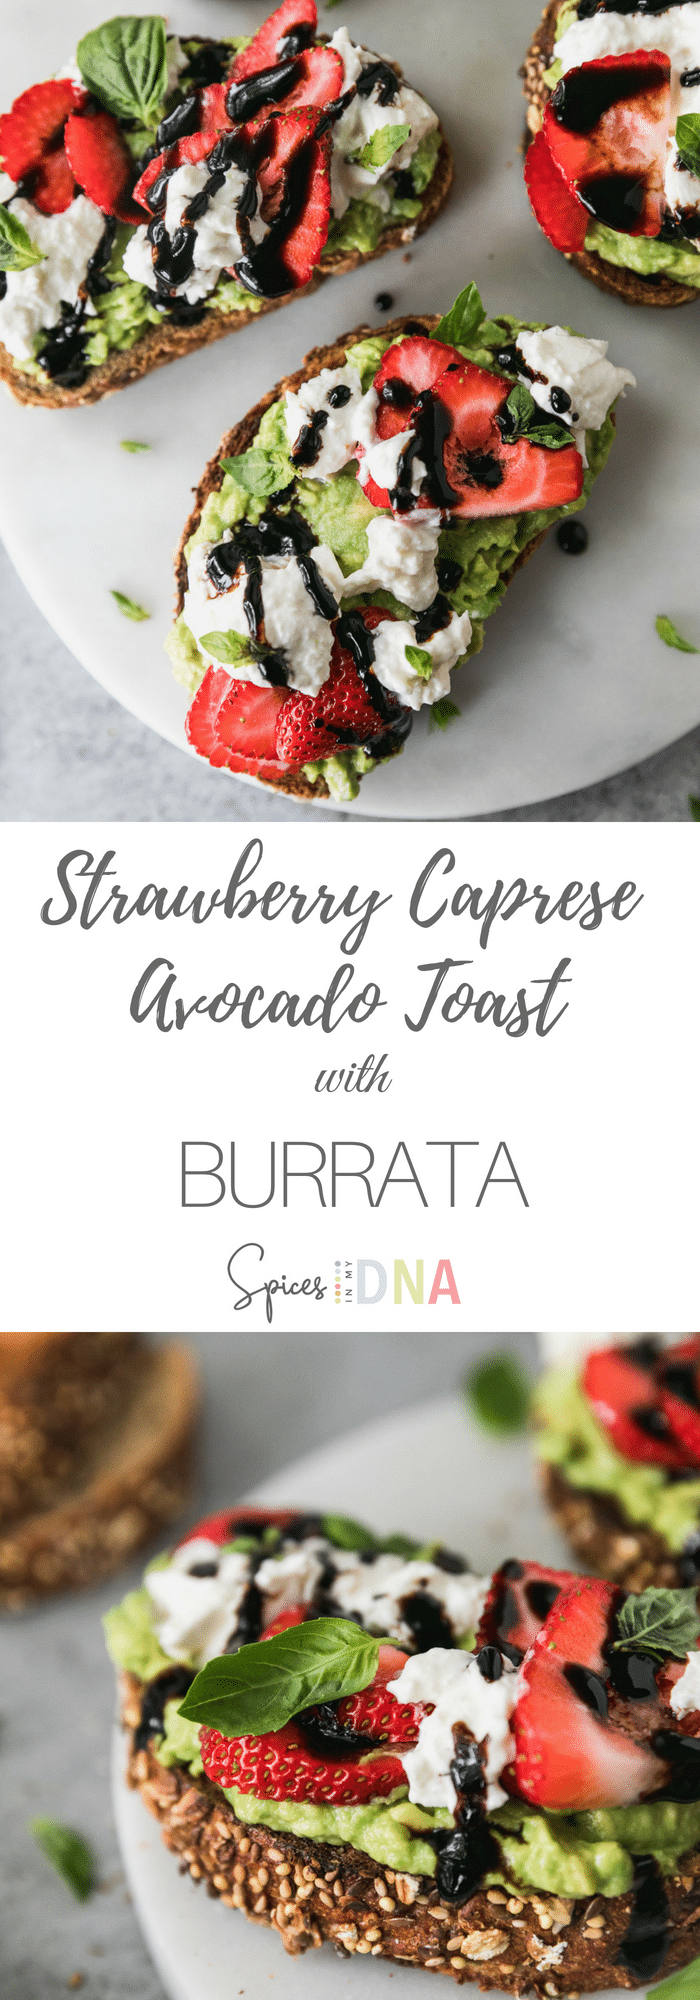 This Strawberry Caprese Avocado Toast with Burrata is the perfect light summer appetizer, and only requires 6 ingredients! The combination of fresh strawberries, mashed avocado, creamy burrata cheese, and sweet balsamic glaze is absolutely to die for! The addition of fresh basil and sea salt puts it over the top! #avocadotoast #caprese #appetizer